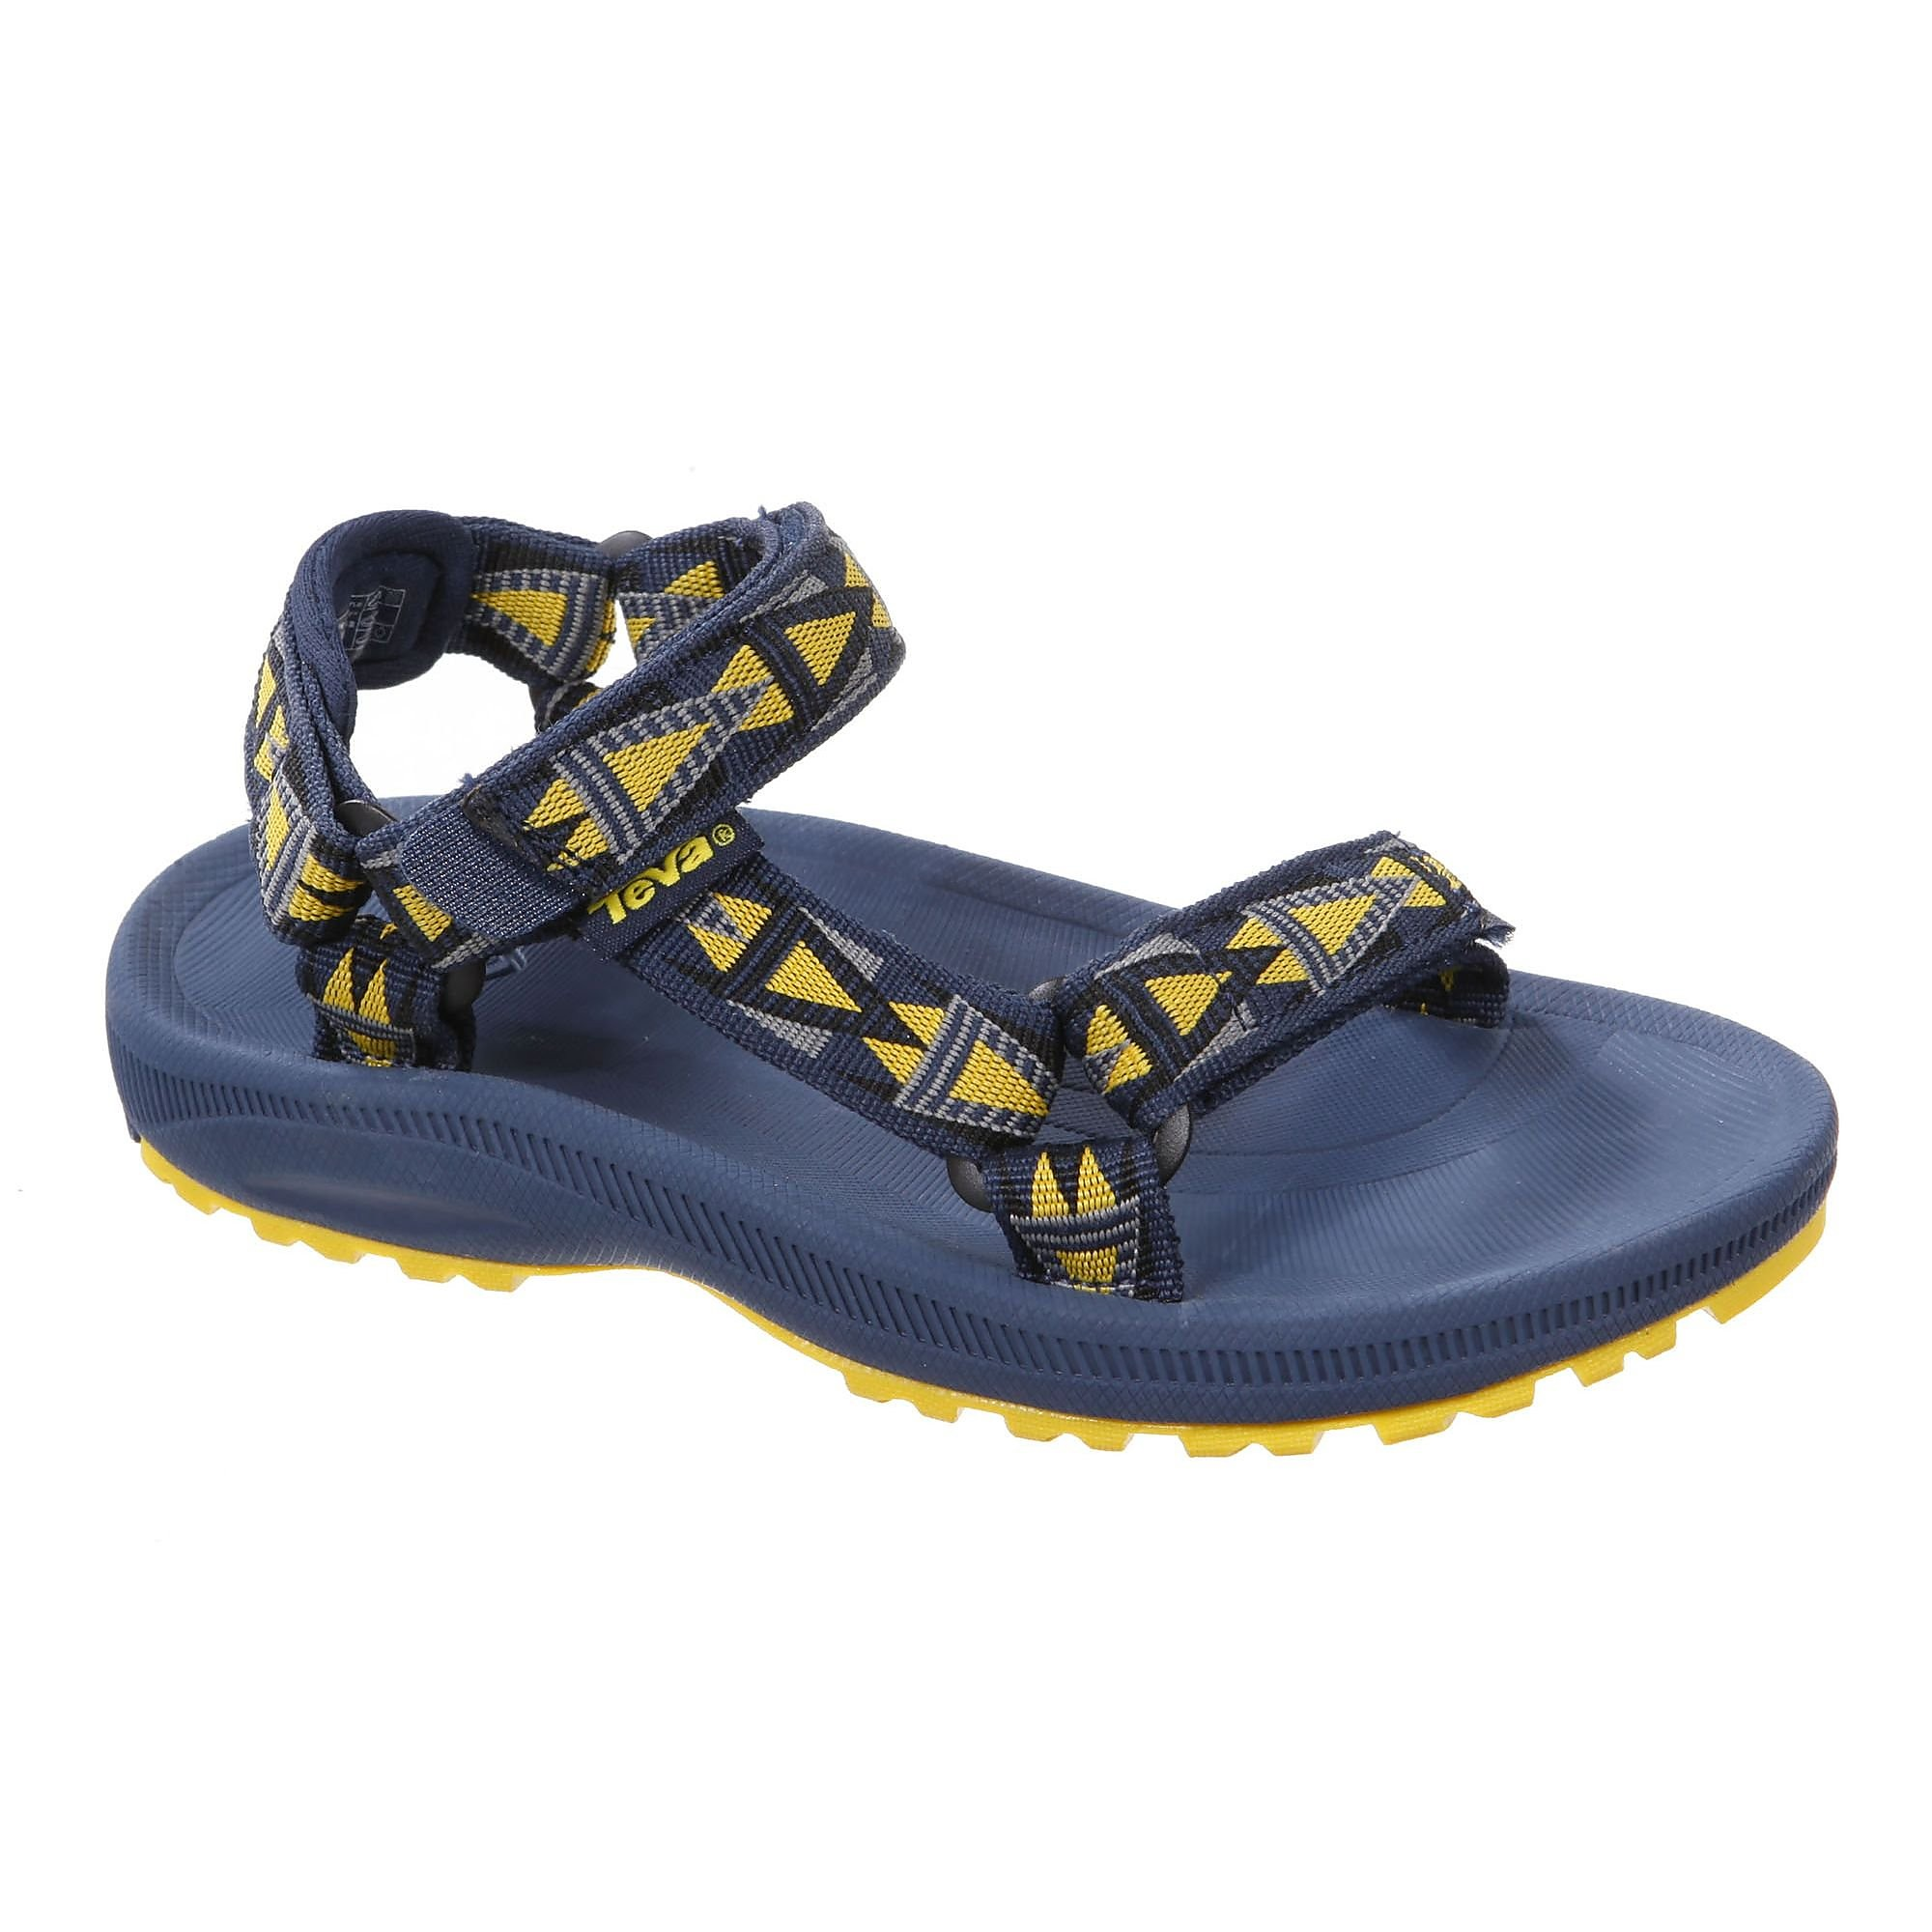 TEVA HURRICANE 2 JR